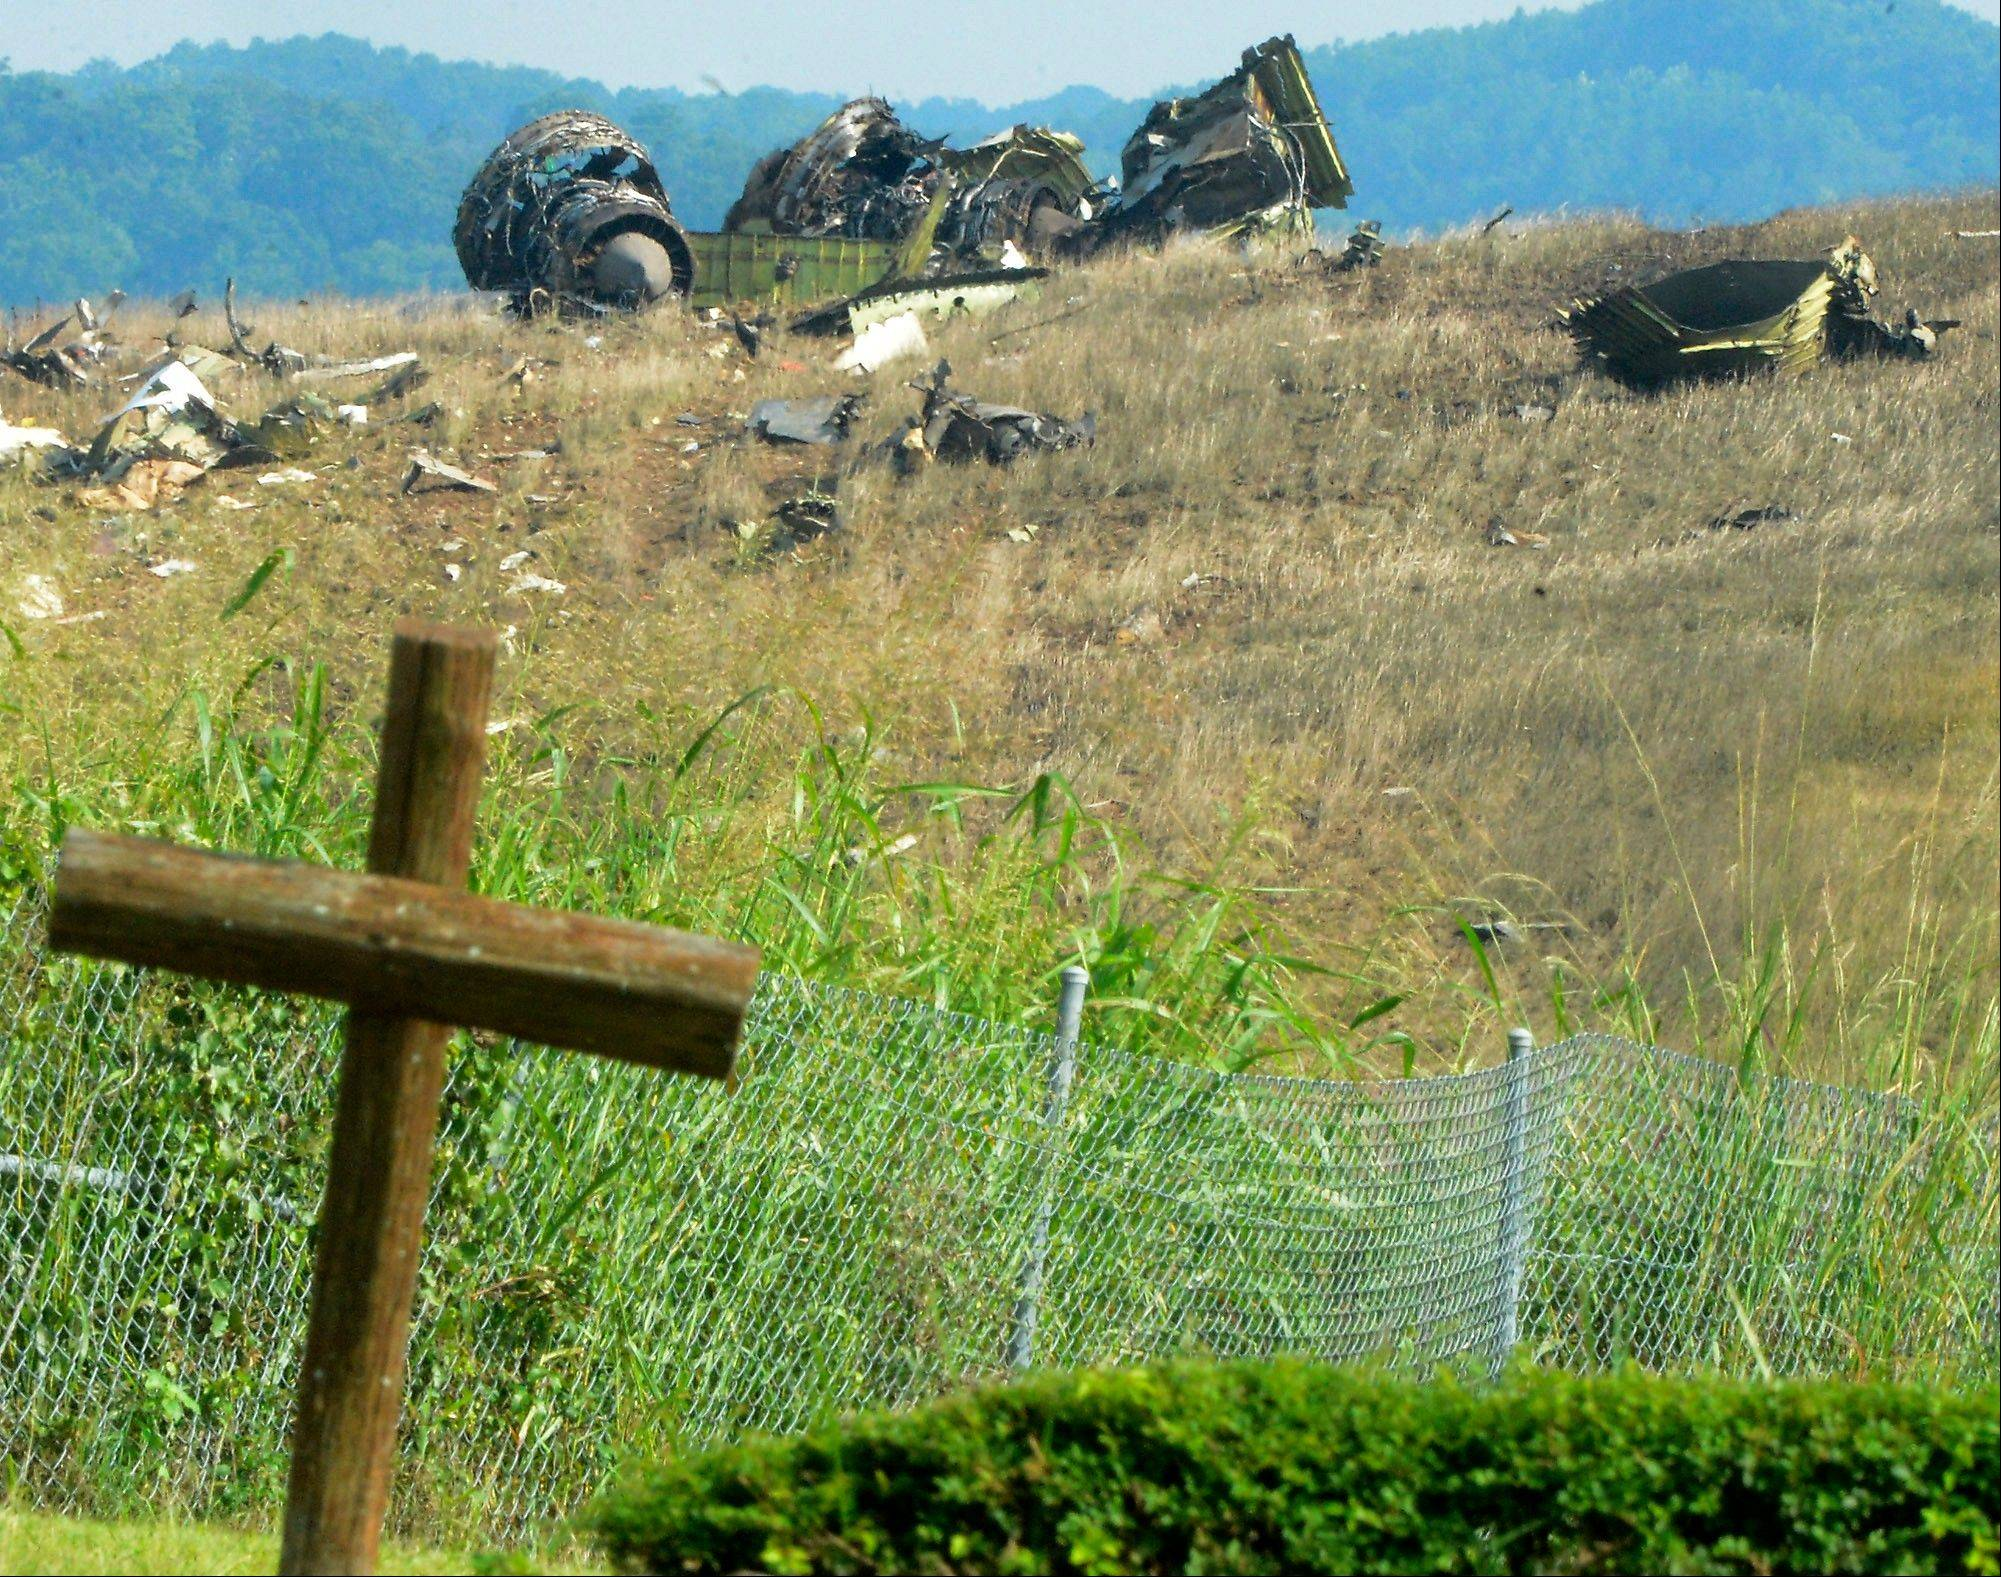 A wooden cross by a church is shown near the wreckage of a UPS Airbus A300 cargo plane that crashed on the north side of the Birmingham-Shuttlesworth International Airport in Birmingham, Ala. Wednesday, Aug. 14, 2013. The cargo plane crashed into a field near the Birmingham airport Wednesday, killing two pilots and scattering wreckage over a wide rural area moments after witnesses heard the massive jet coming in at treetop level.